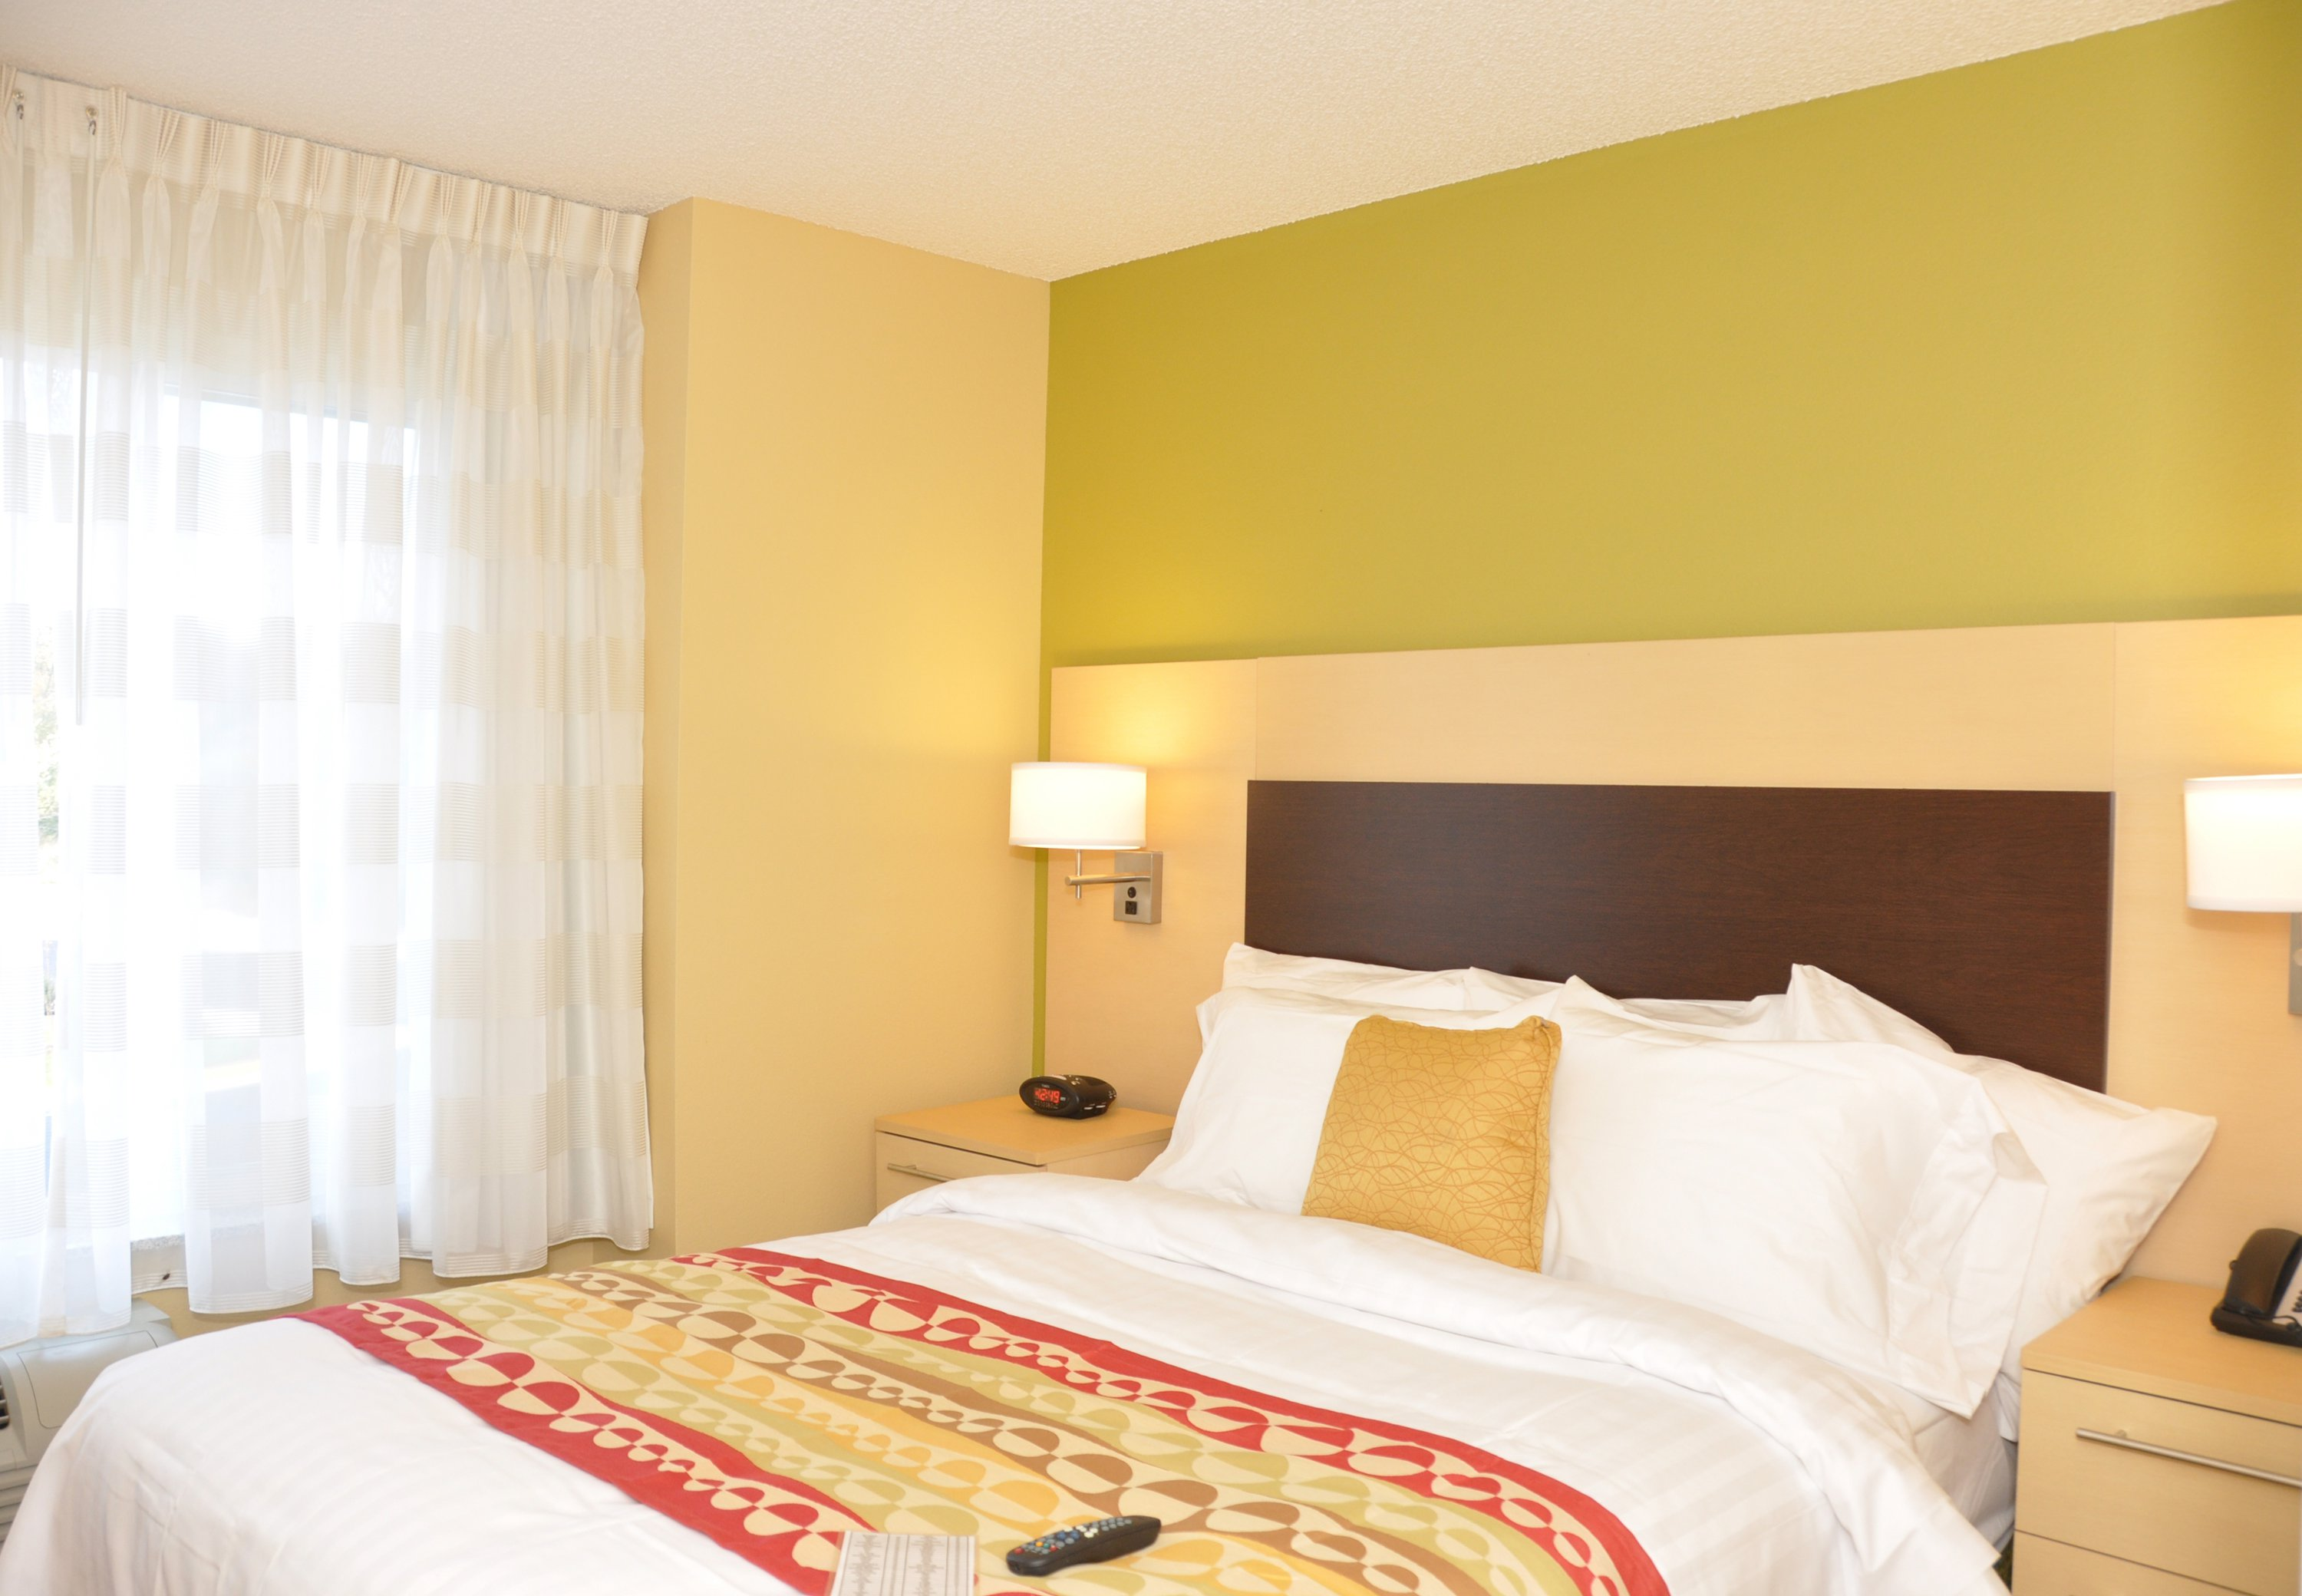 TownePlace Suites by Marriott Winchester image 3